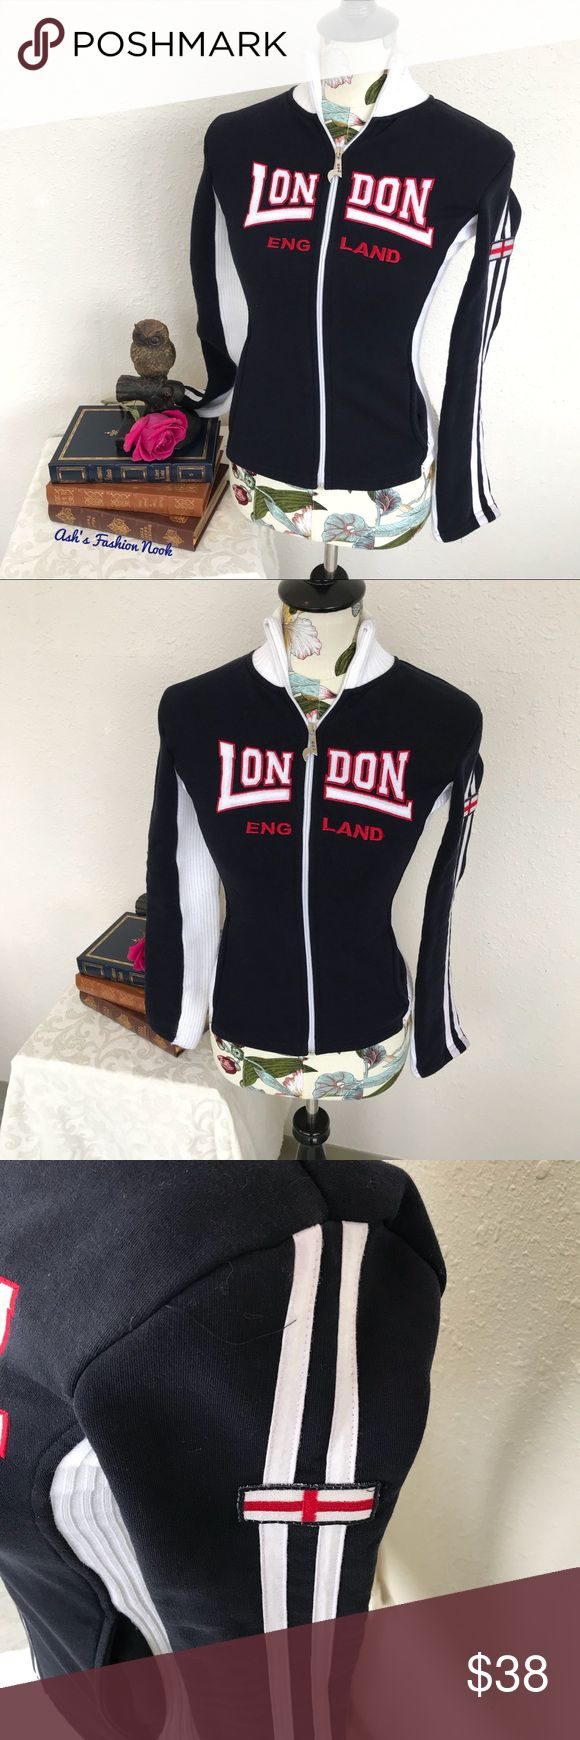 💠Just in💠 London England Sweater Jacket 🌸Brand: Nas🌸 Color(s): dark navy blue and white Size: XL (runs small/check measurements) I would say this would better fit a women's small Stretch: some Fabric Content: see pic Measurements: see pic Condition: EUC! Note(s): very cute and unique! Great condition, no flaws!   📦Bundle your likes, and I will send you a no obligation offer. Or, submit a reasonable offer!📦(A) Nas Tops Sweatshirts & Hoodies